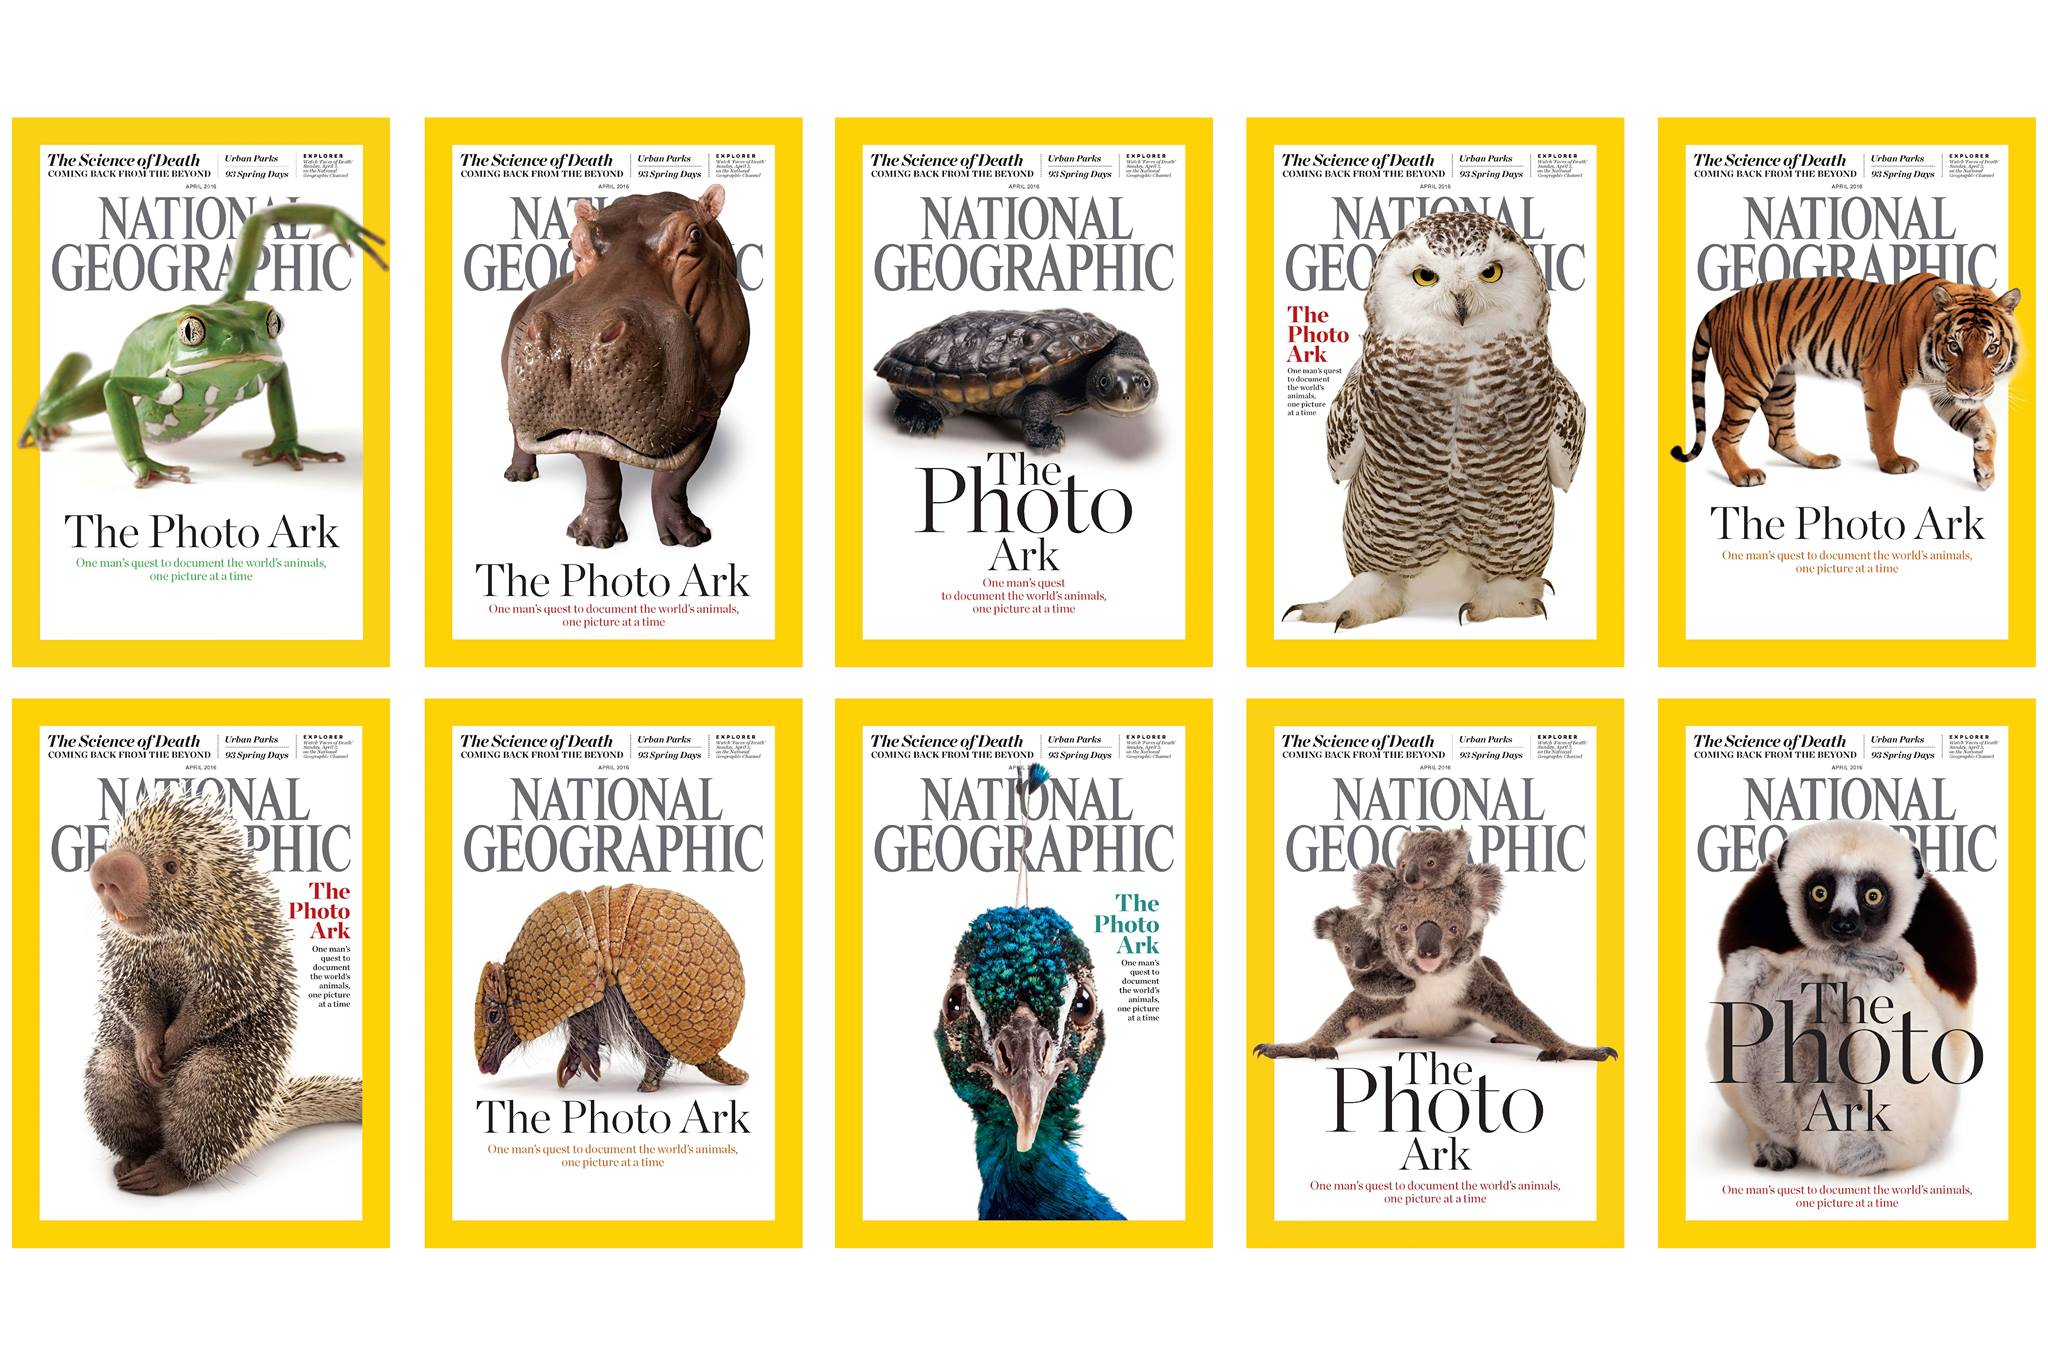 National Geographic, Photographer, Joel Sartore